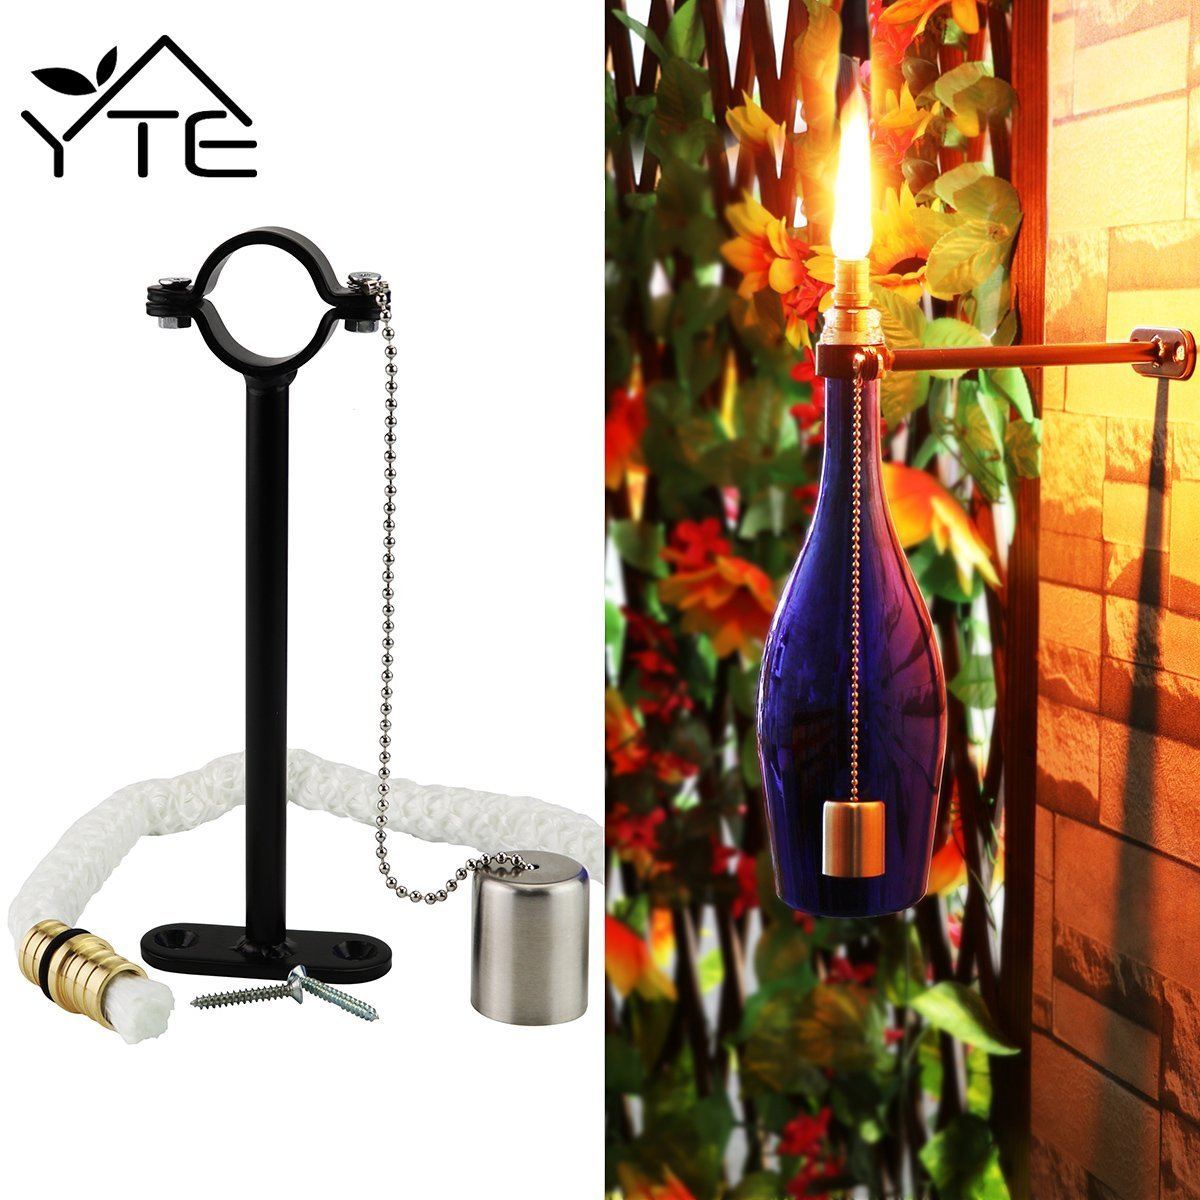 Outside Lights Wickes: YTE Tiki Torch Kit Wine Bottle With Wicks Brass For